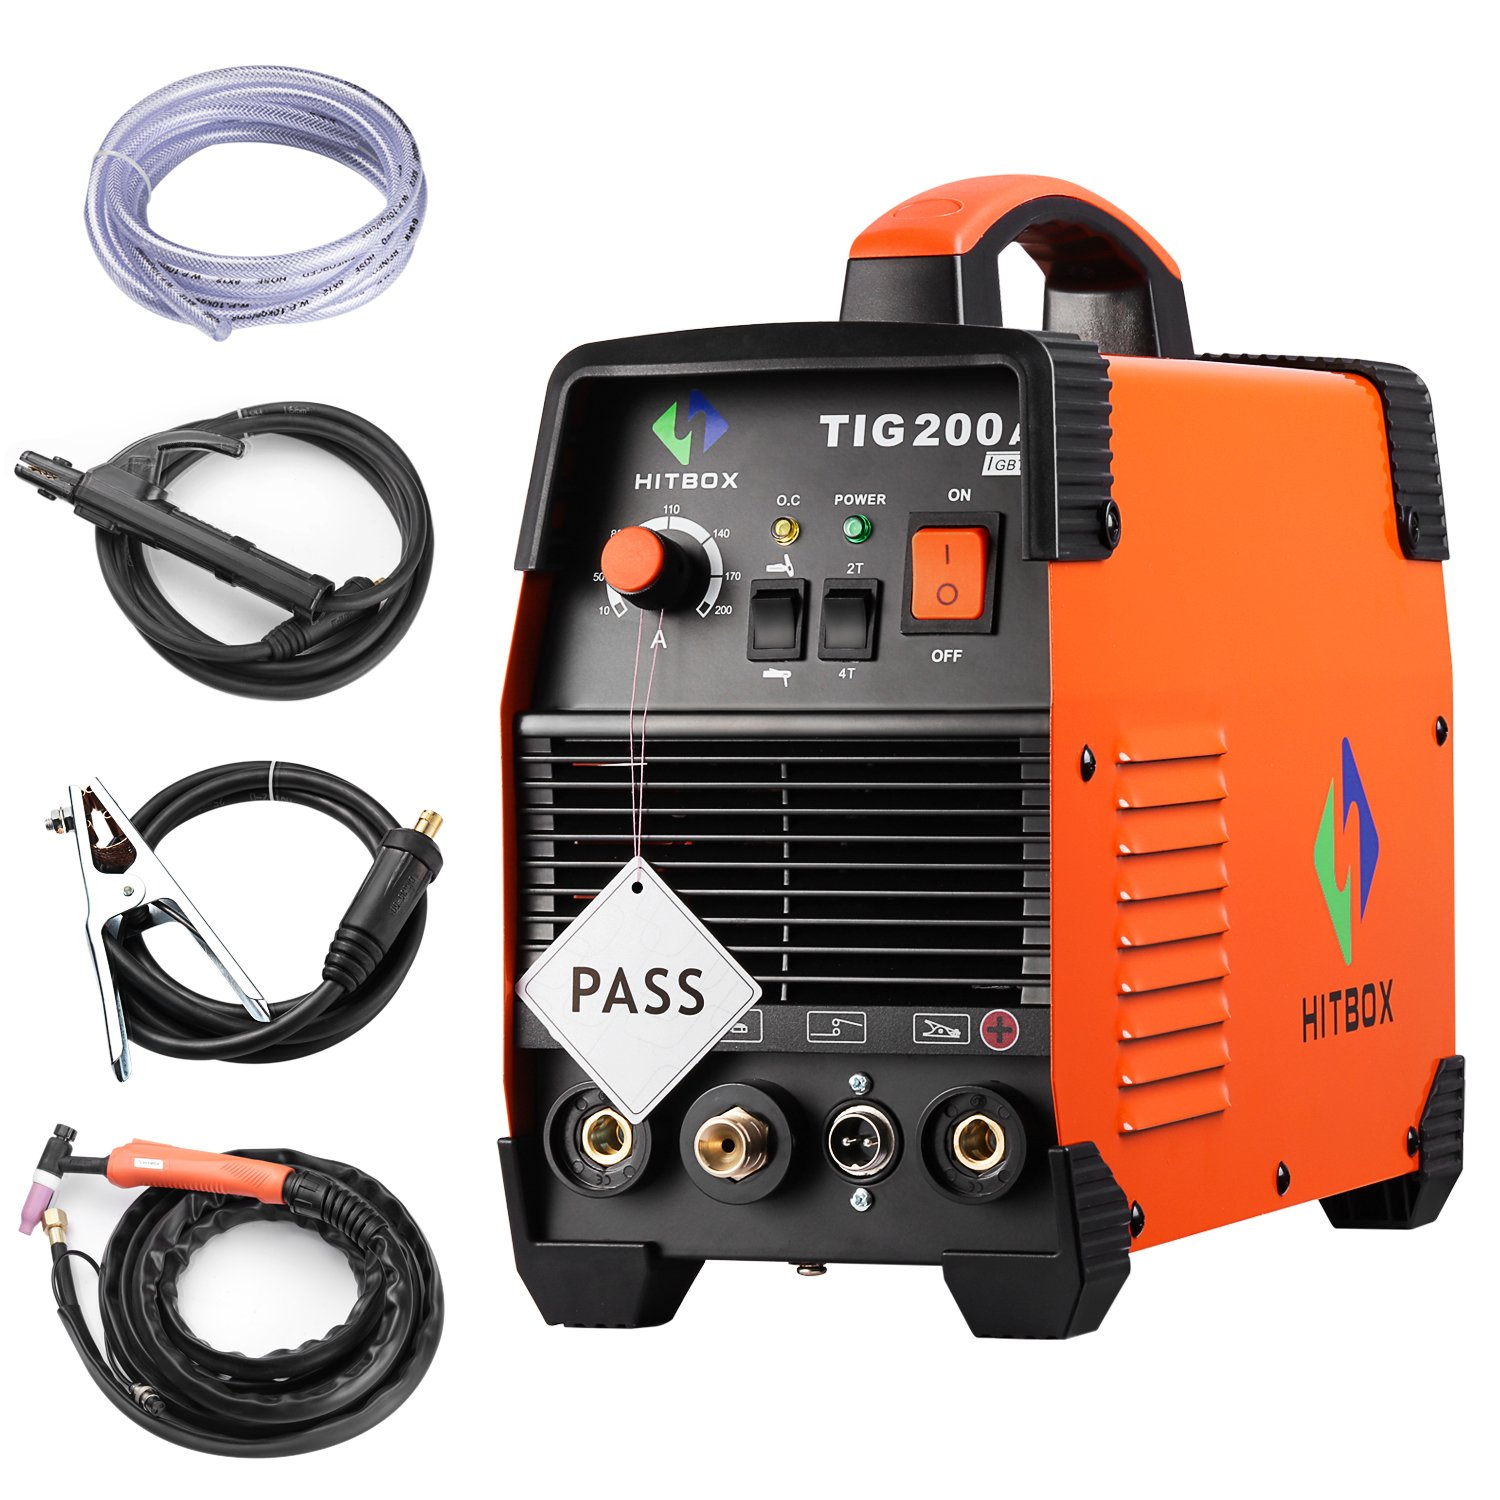 200 Amp Portable Tig Welding Machine High Frequency 220v Mma Inverter Pcb Board Cutting Circuit Industry With Stick Igbt Welder